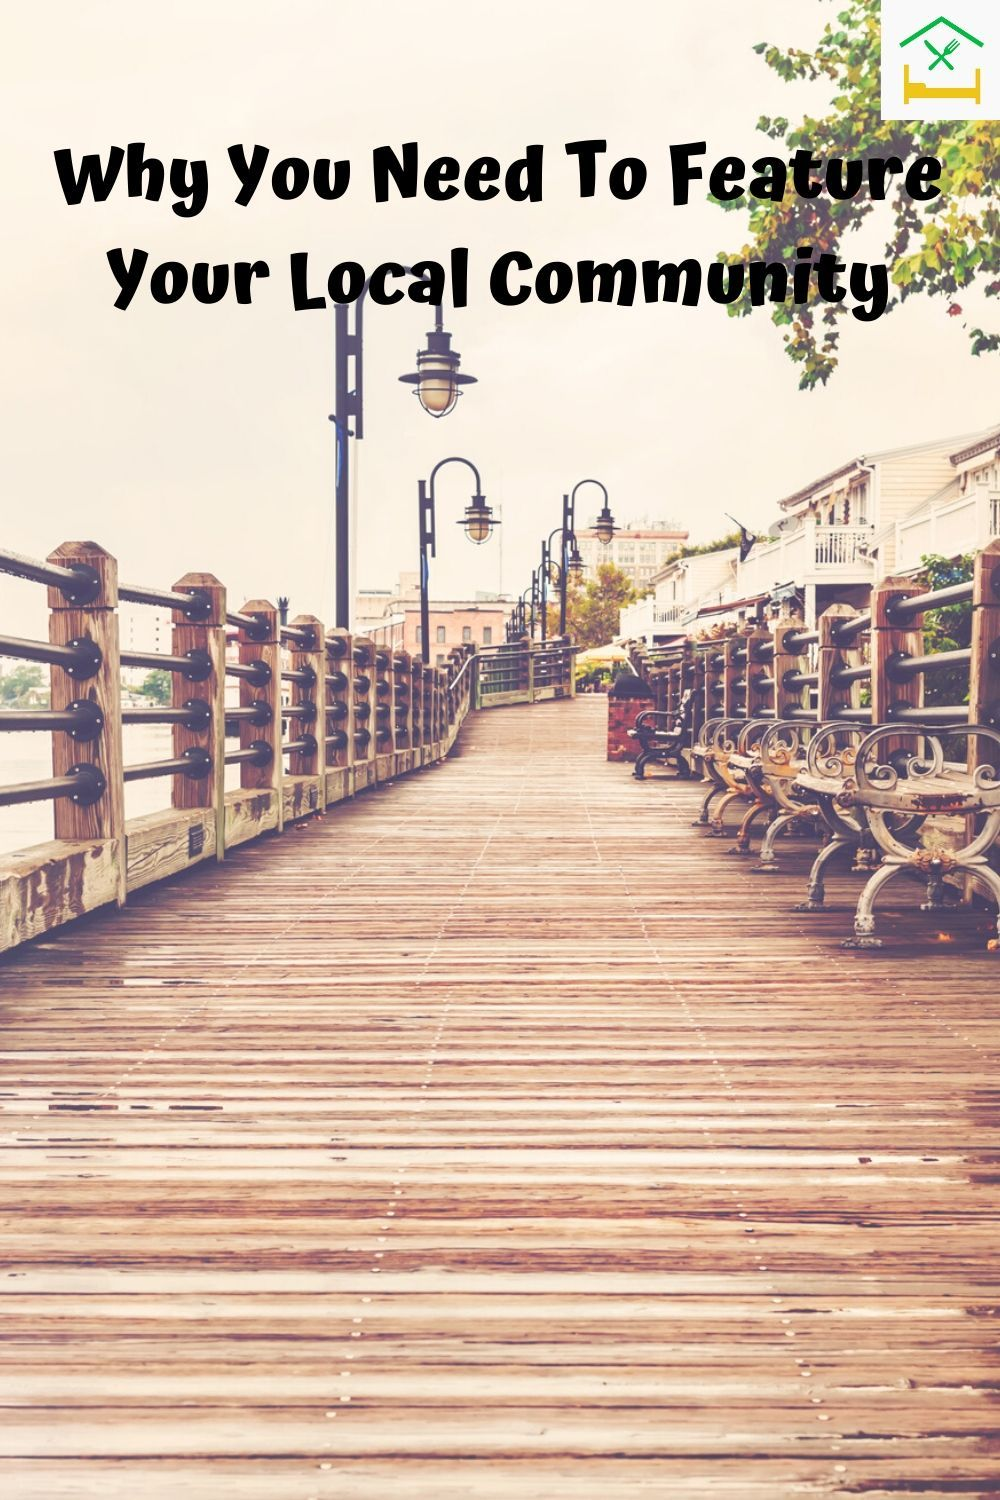 Why You Need To Feature Your Local Community in 2020